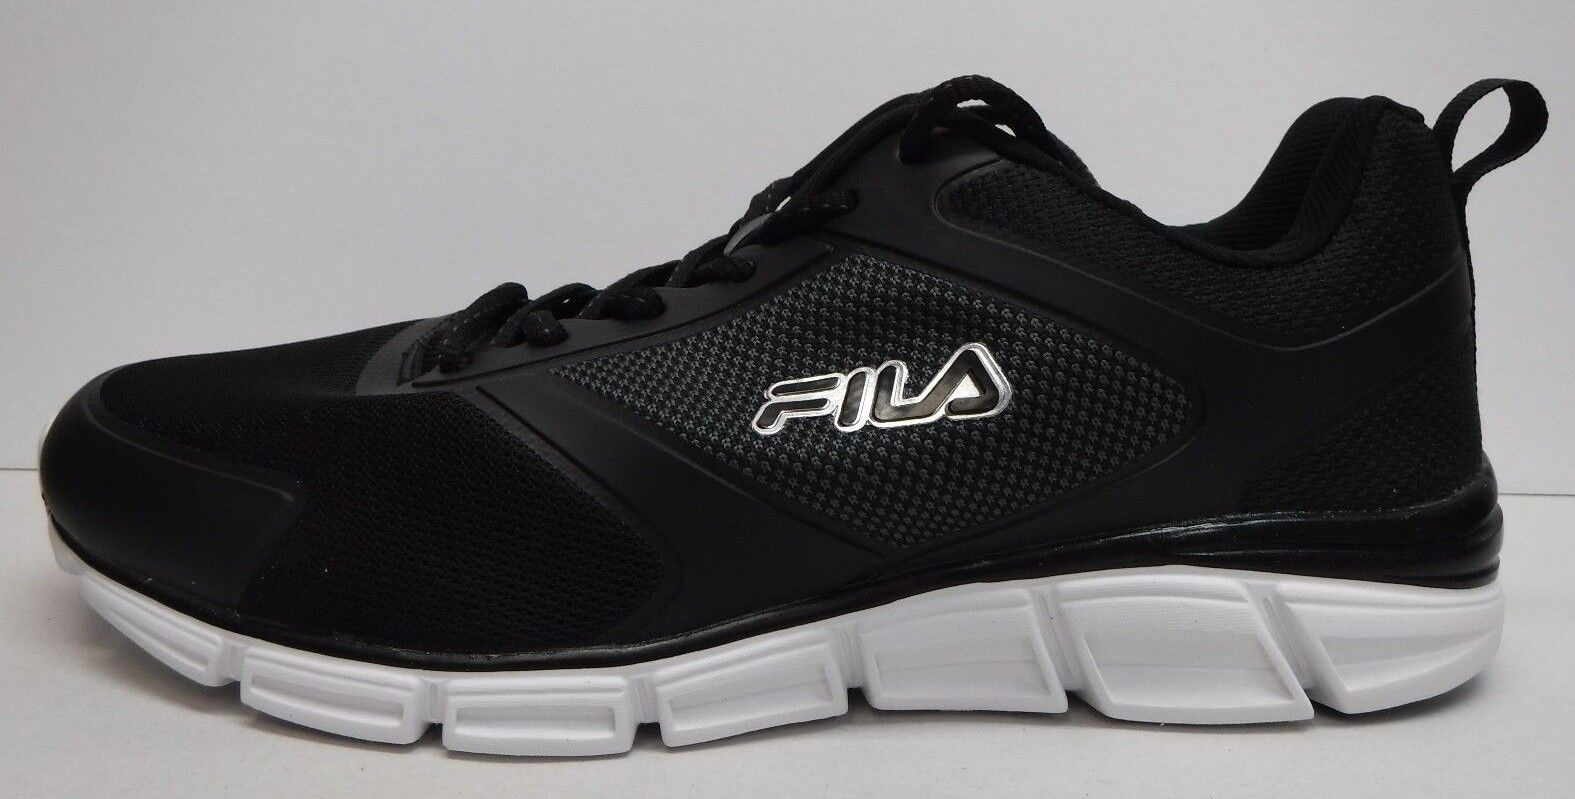 FILA Sze 11.5 Memory Training Steelsprint Negro Training Memory Athletic SNEAKERS e46494